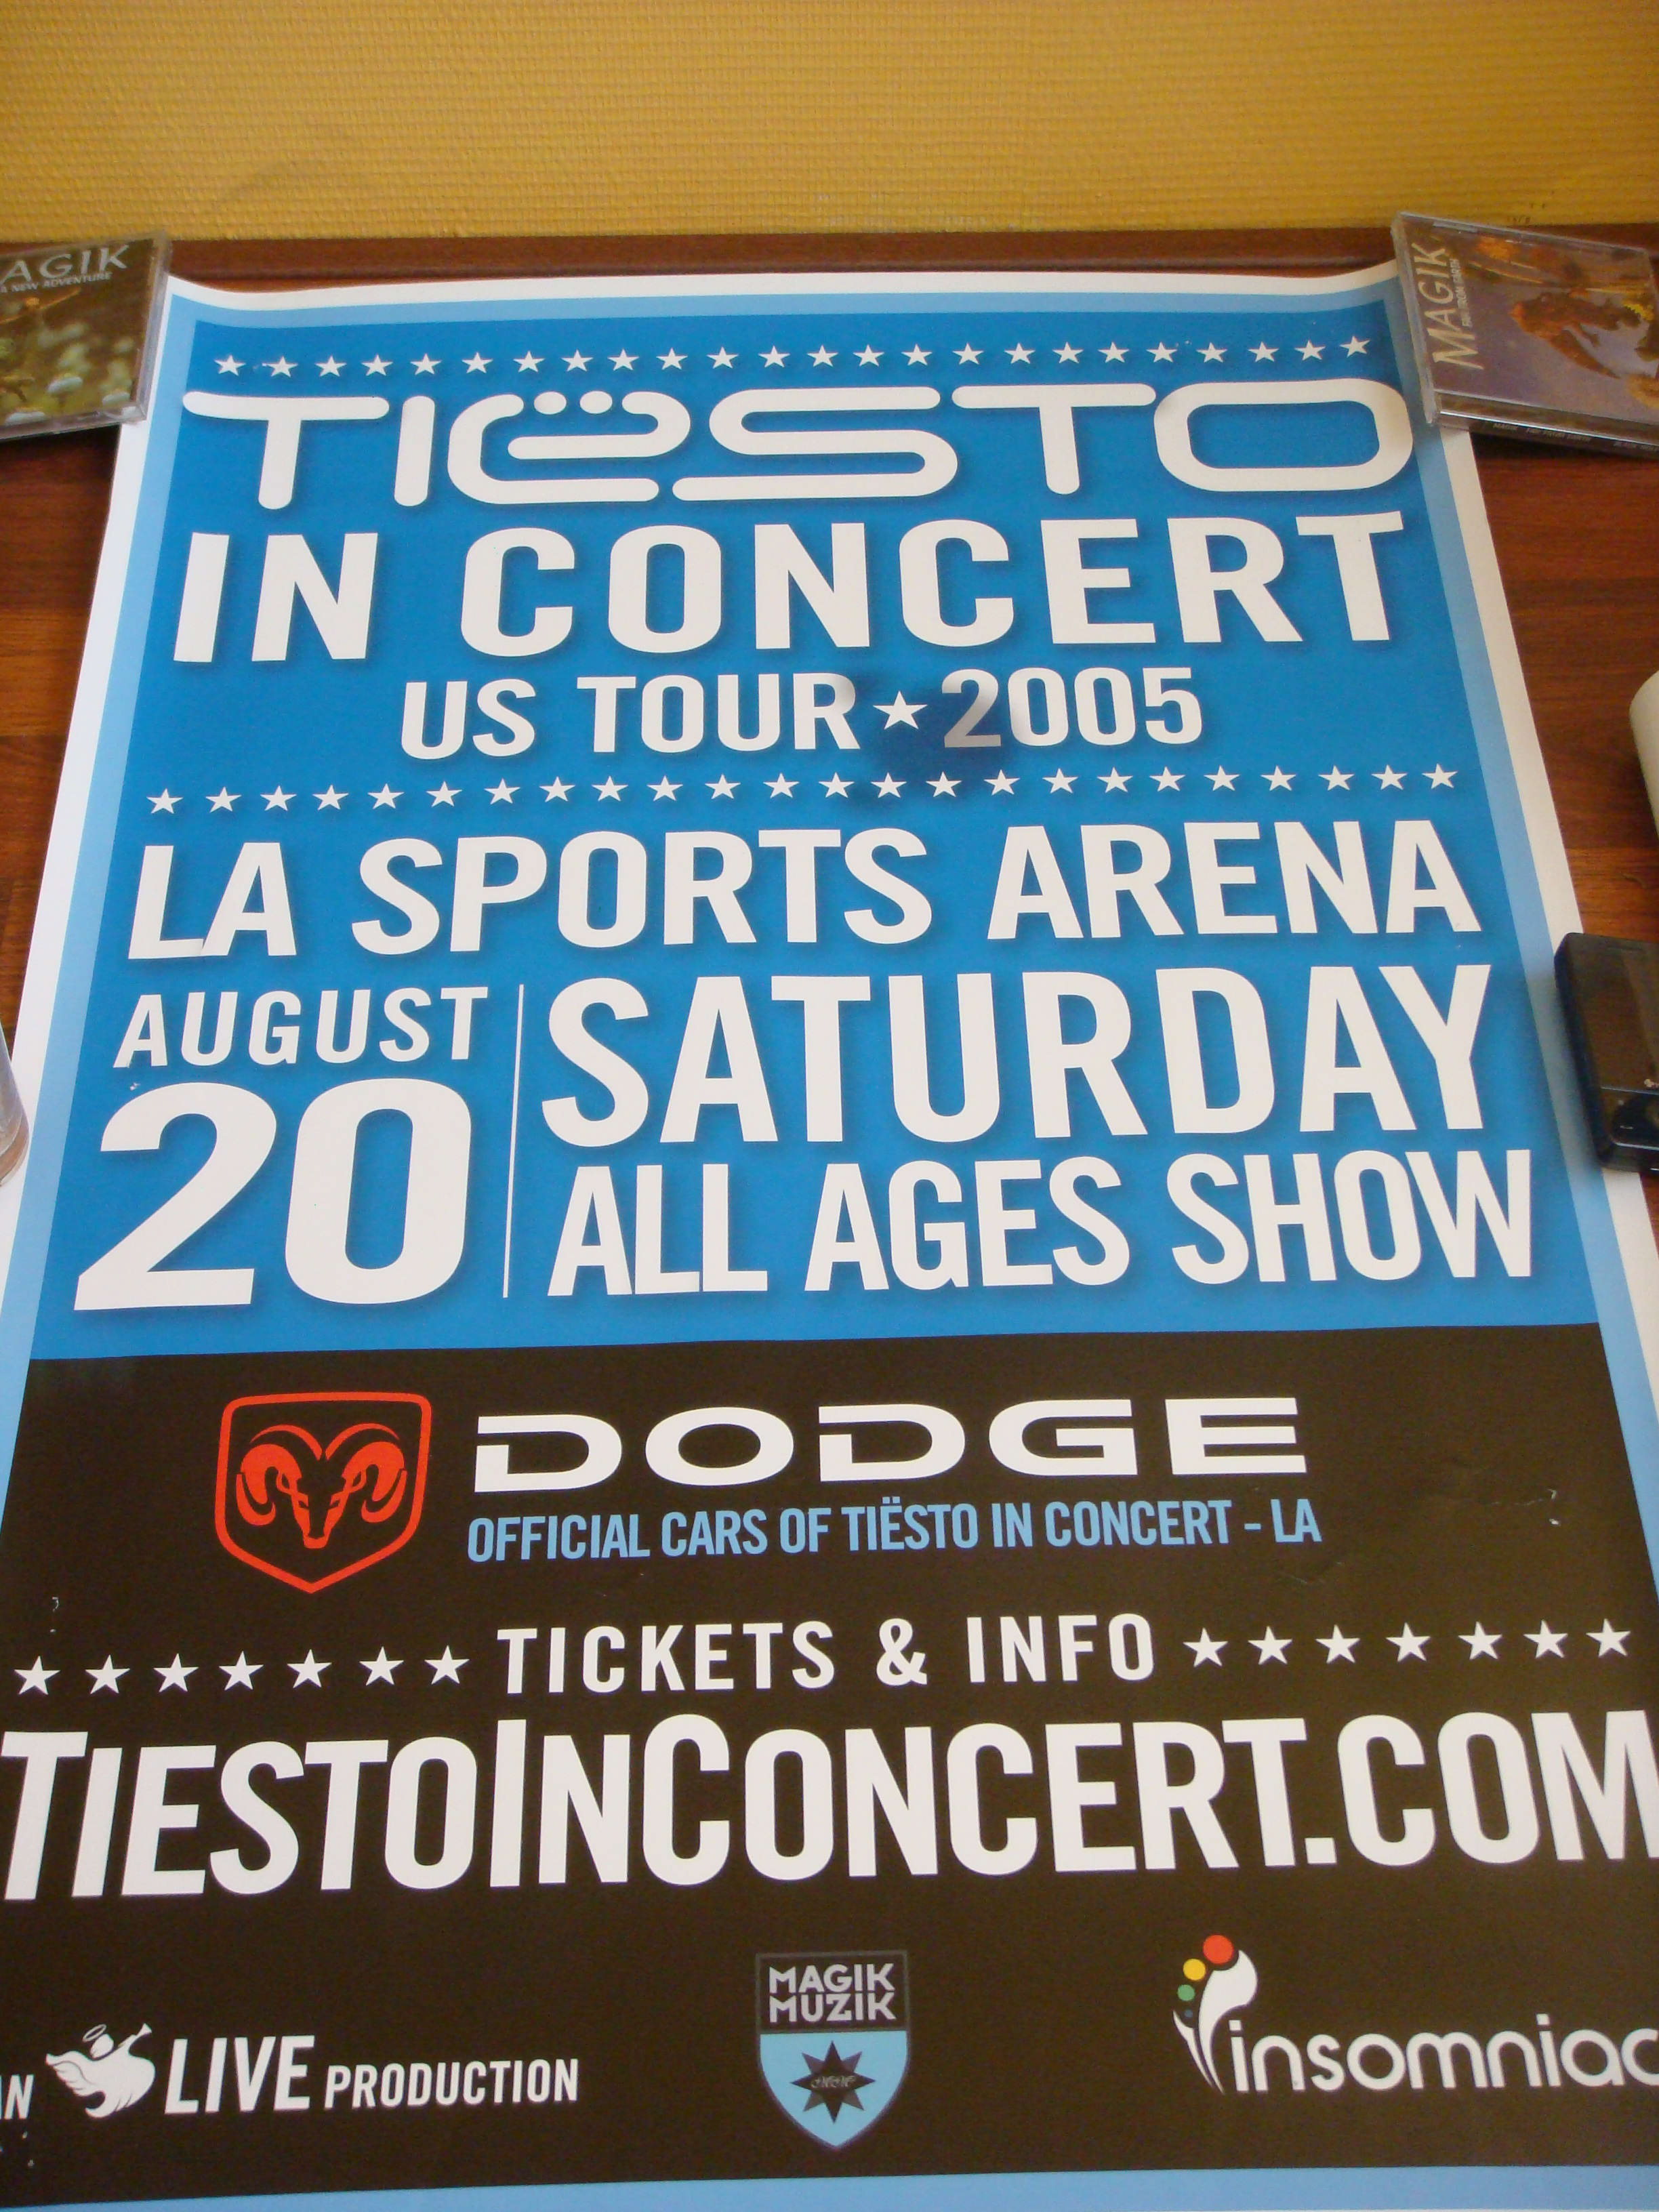 Tiesto In Concert US Tour 2005 Poster